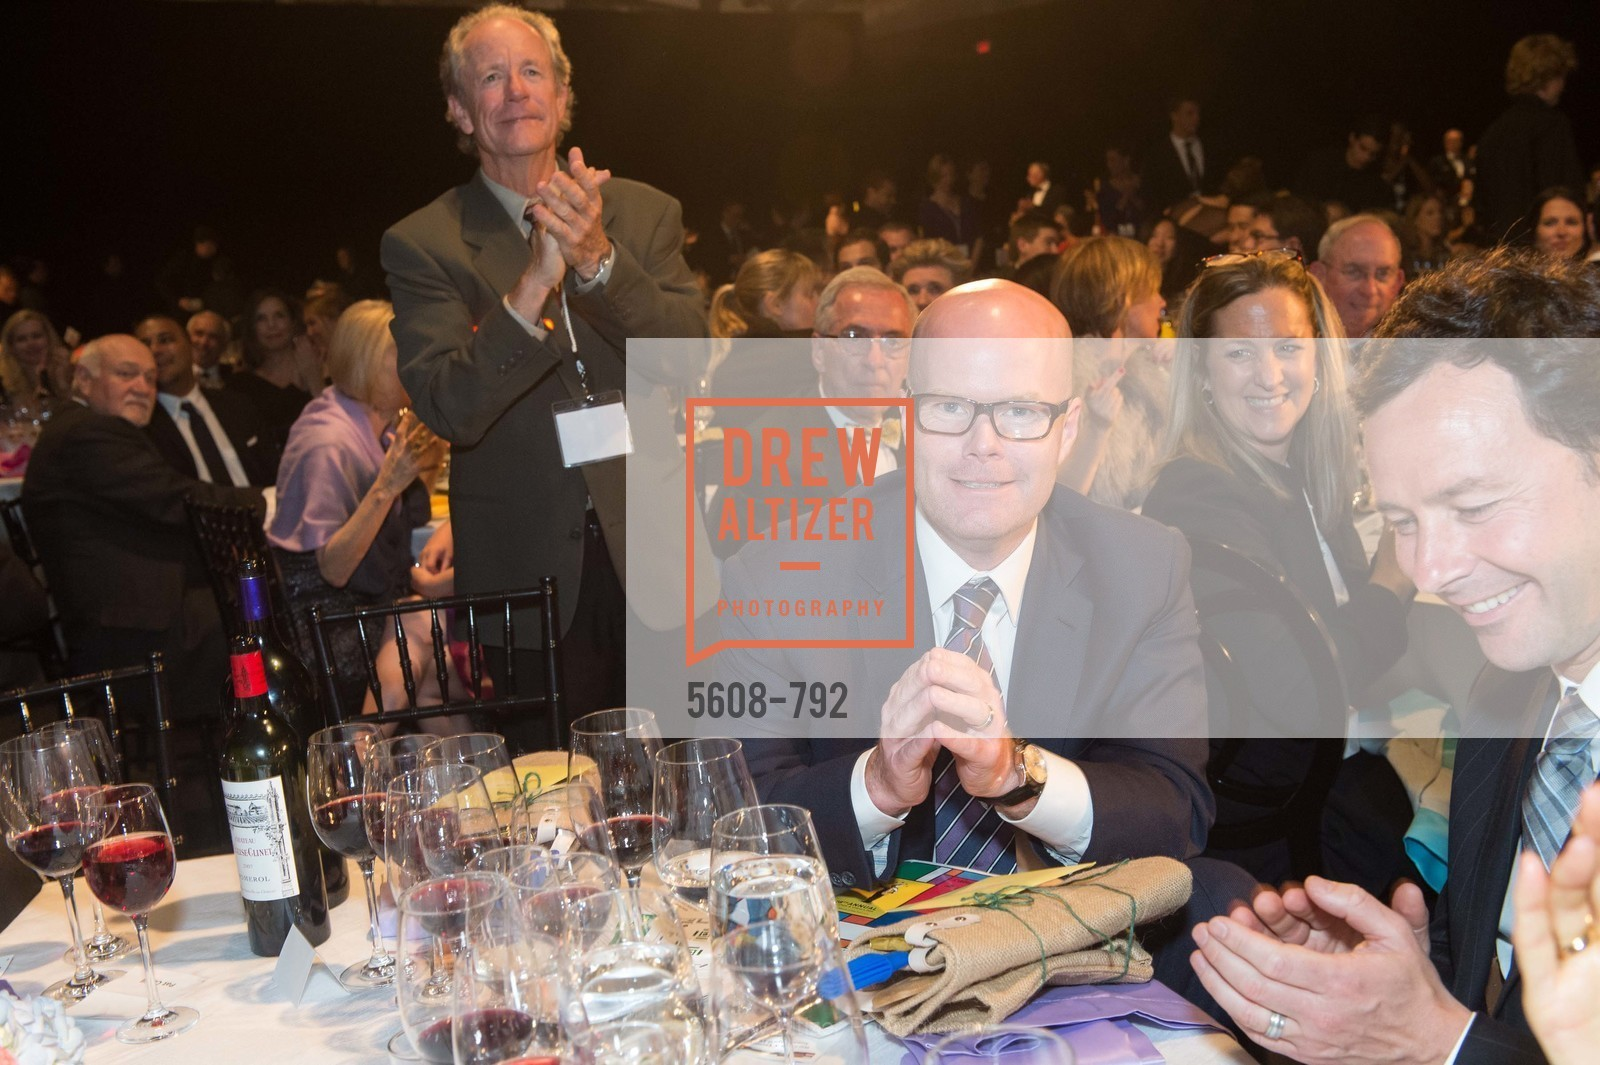 Eric Knight, MEALS ON WHEELS OF SAN FRANCISCO'S 28th Annual Star Chefs and Vintners Gala, US, April 20th, 2015,Drew Altizer, Drew Altizer Photography, full-service event agency, private events, San Francisco photographer, photographer California